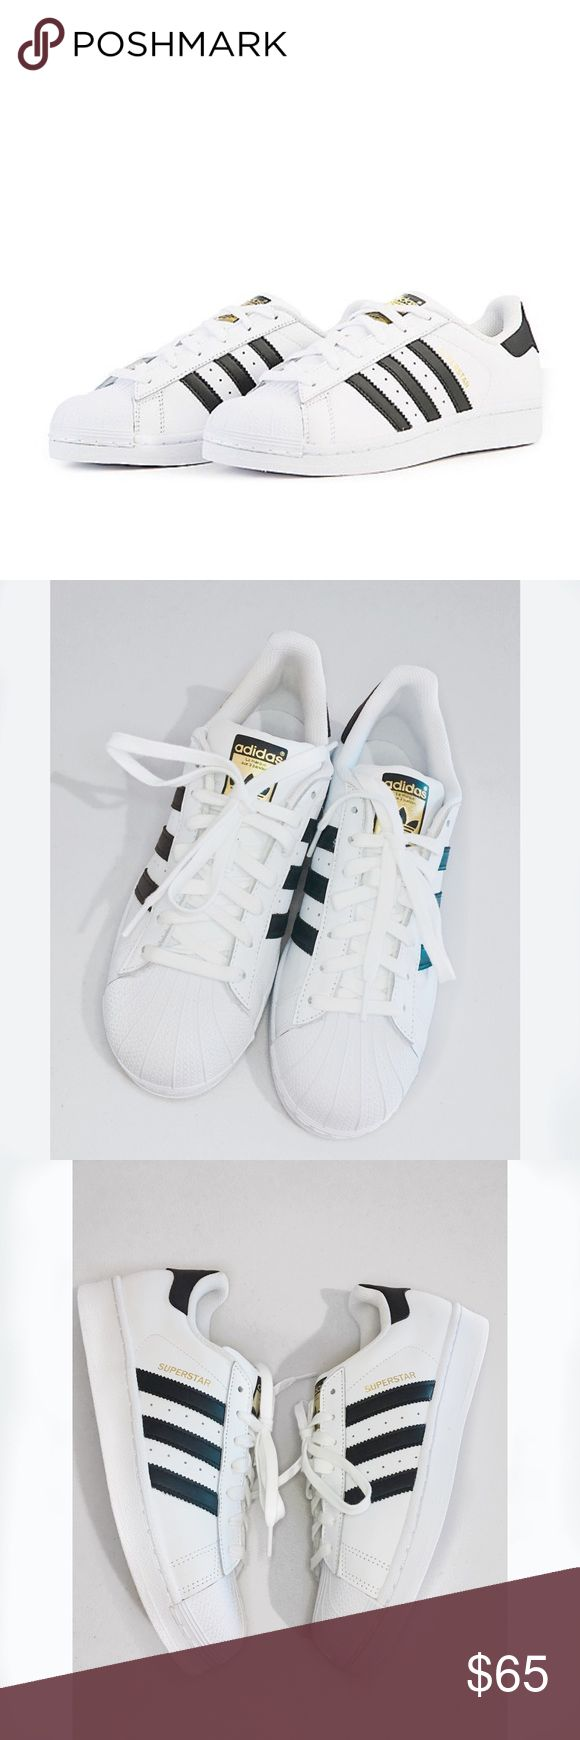 ADIDAS Superstar Floor Sample • Never worn outdoor • No tags or box • No Defects adidas Shoes Sneakers